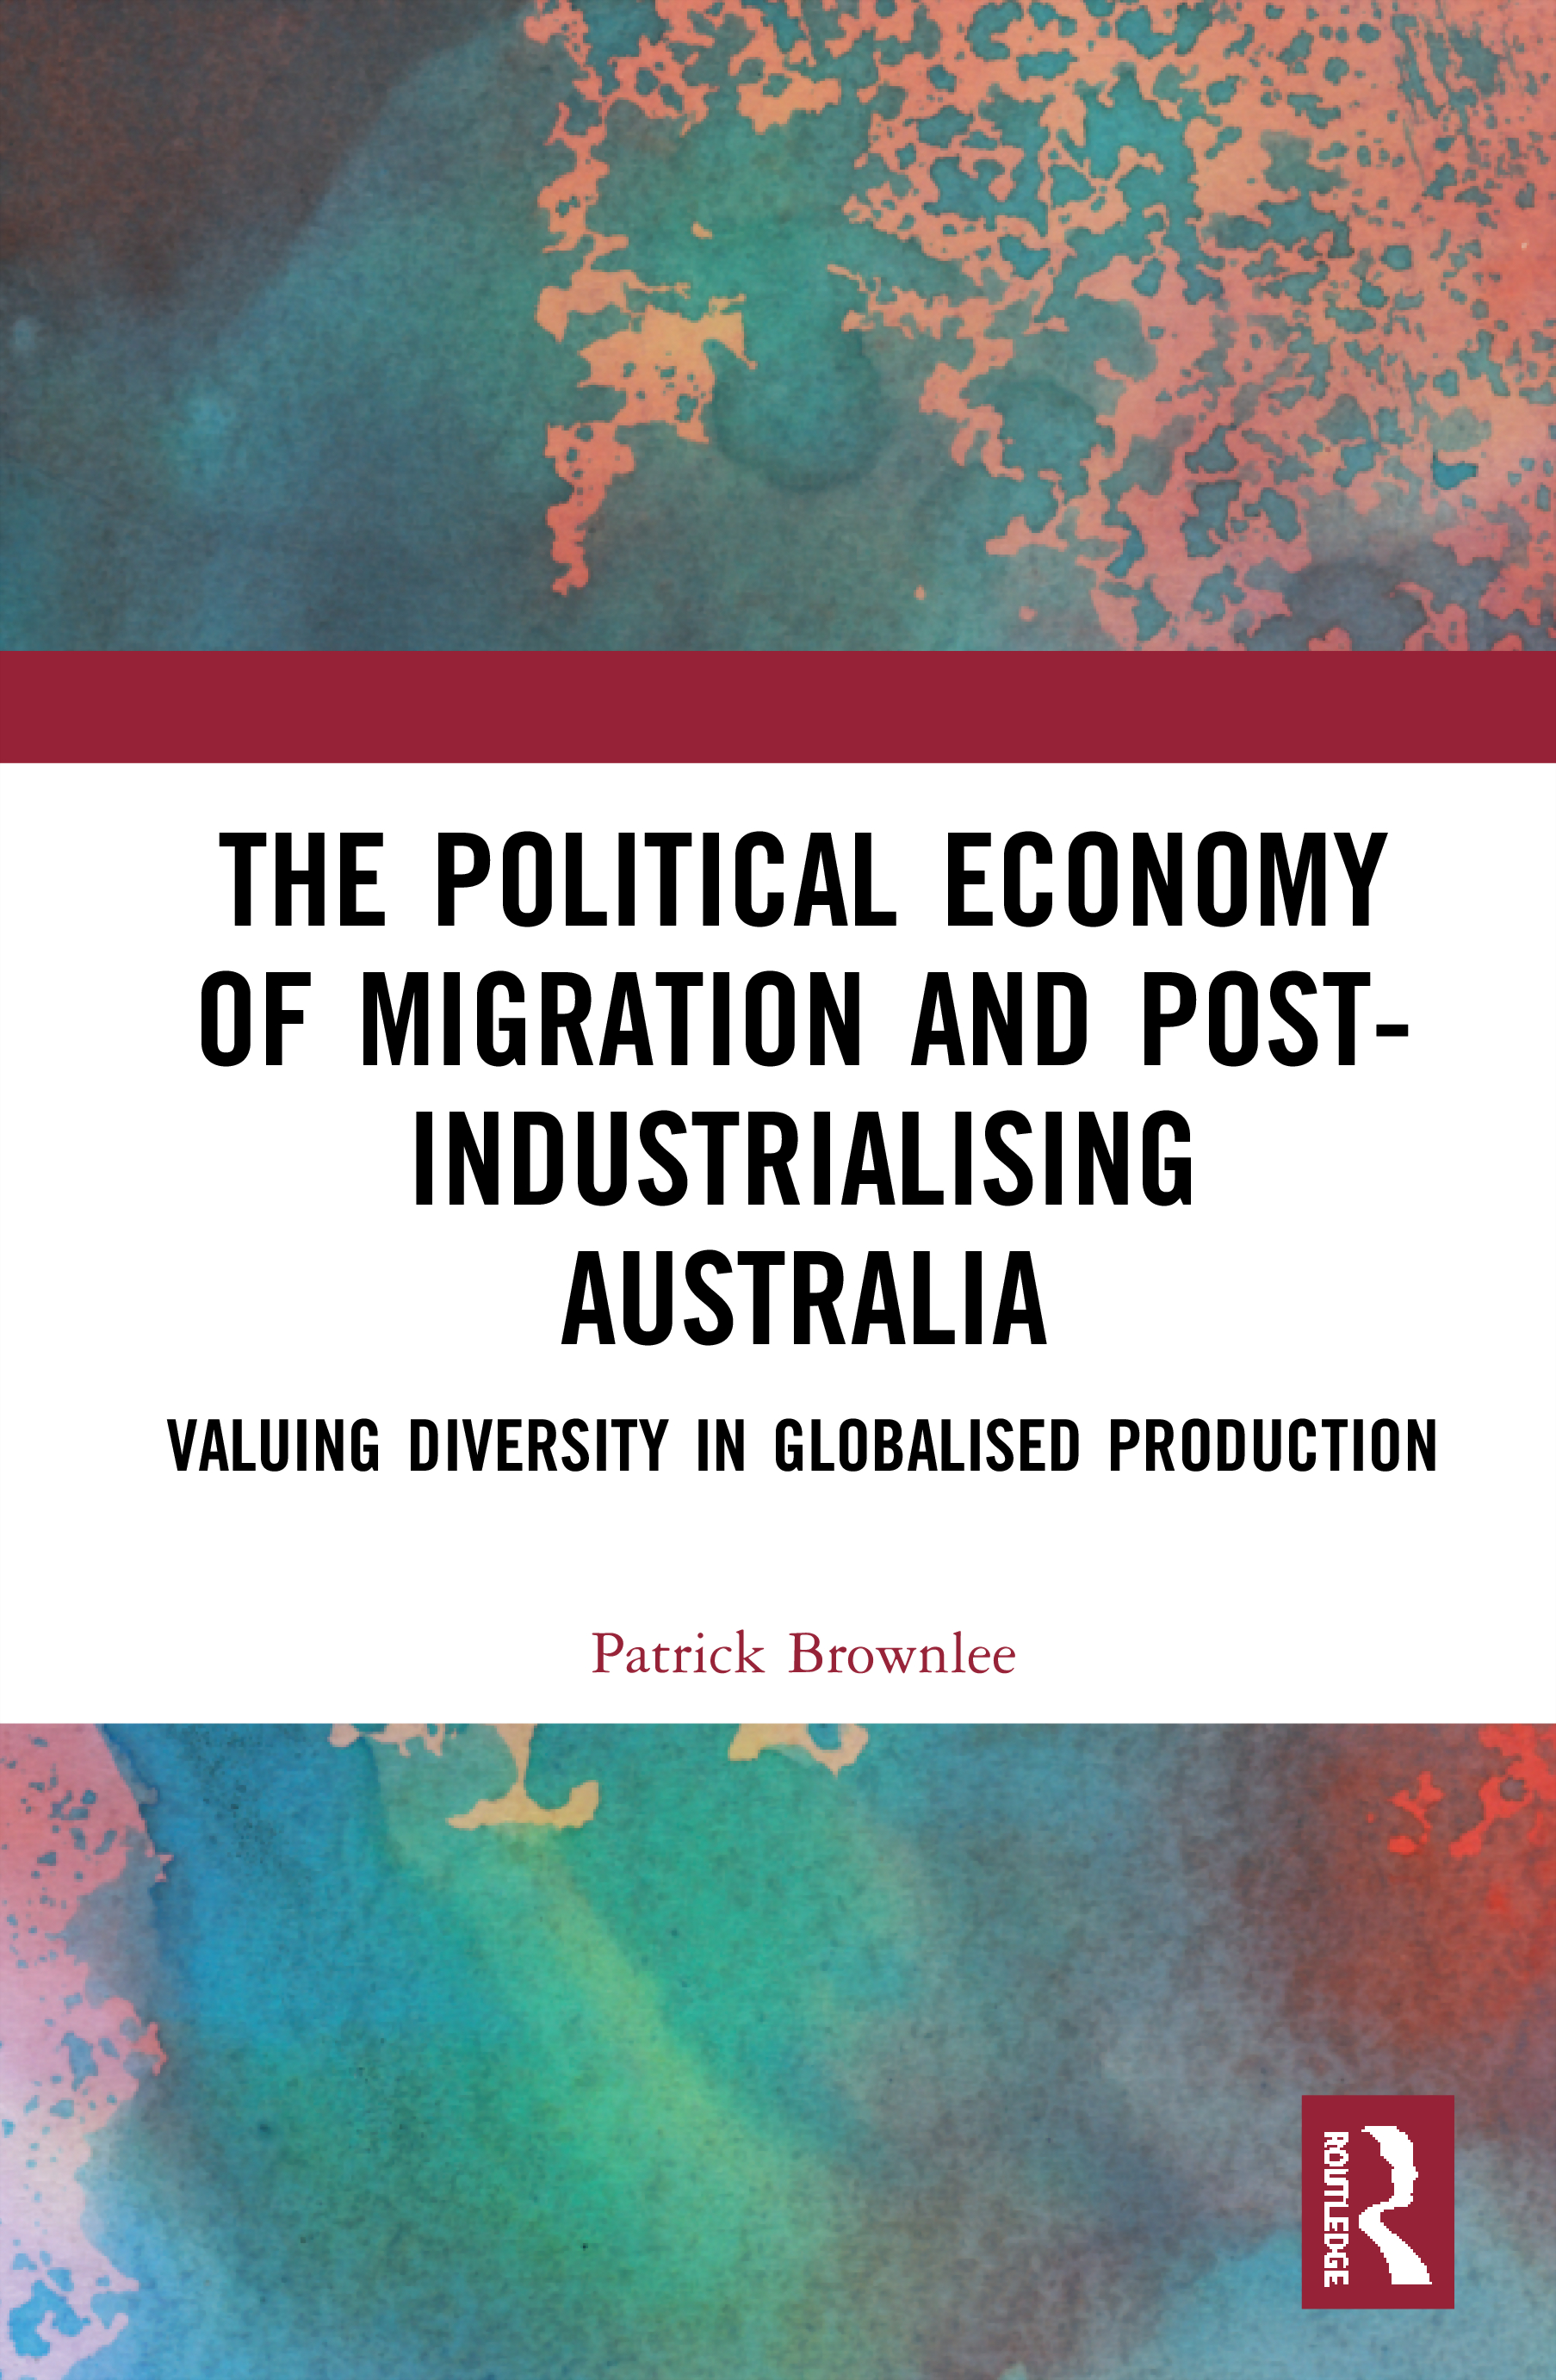 The Political Economy of Migration and Post-industrialising Australia: Valuing Diversity in Globalised Production book cover